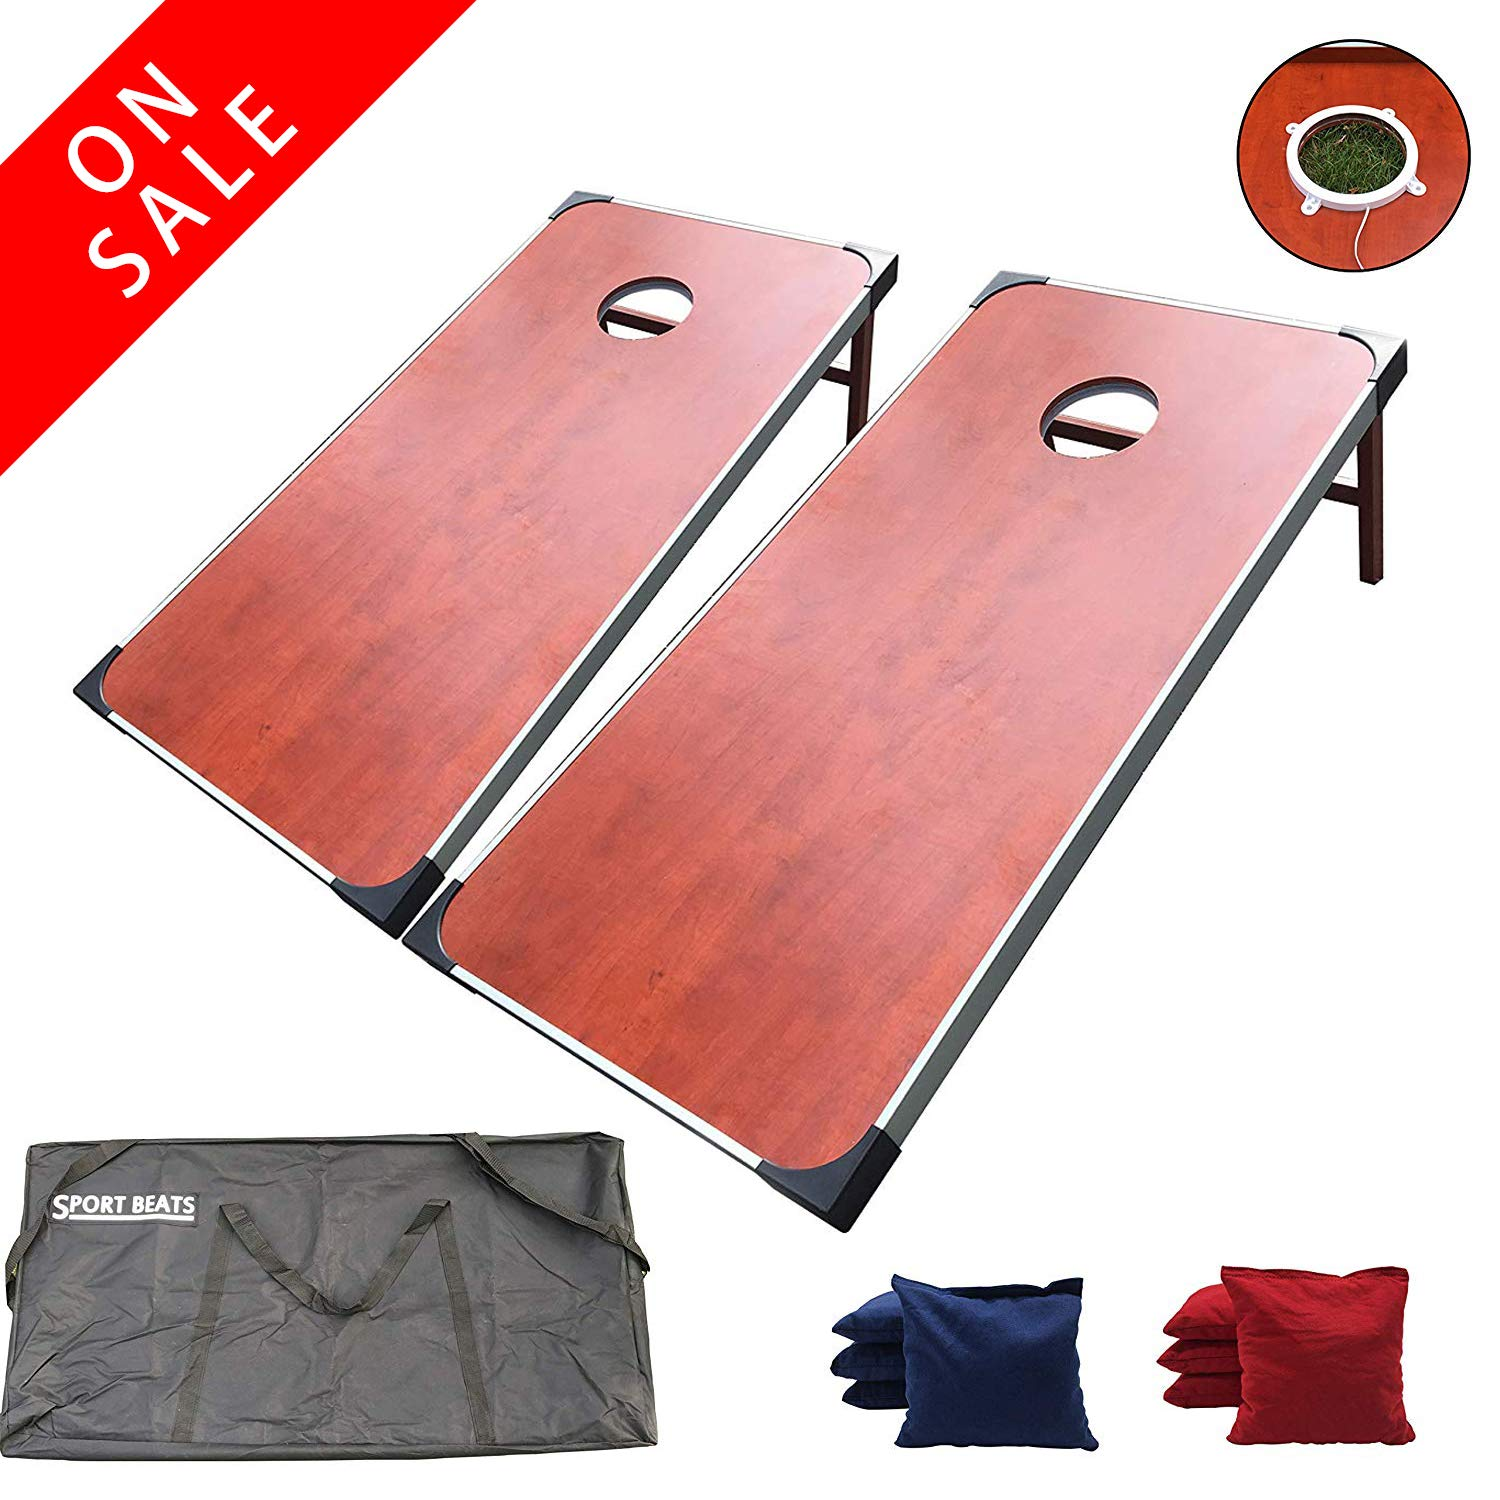 SPORT BEATS Regulation Cornhole Boards with Lights Aluminum Framed Cornhole Set - 2 x 4 Ft Tournament Size Wood Corn Hole Board Game Carrying Bag Included by SPORT BEATS